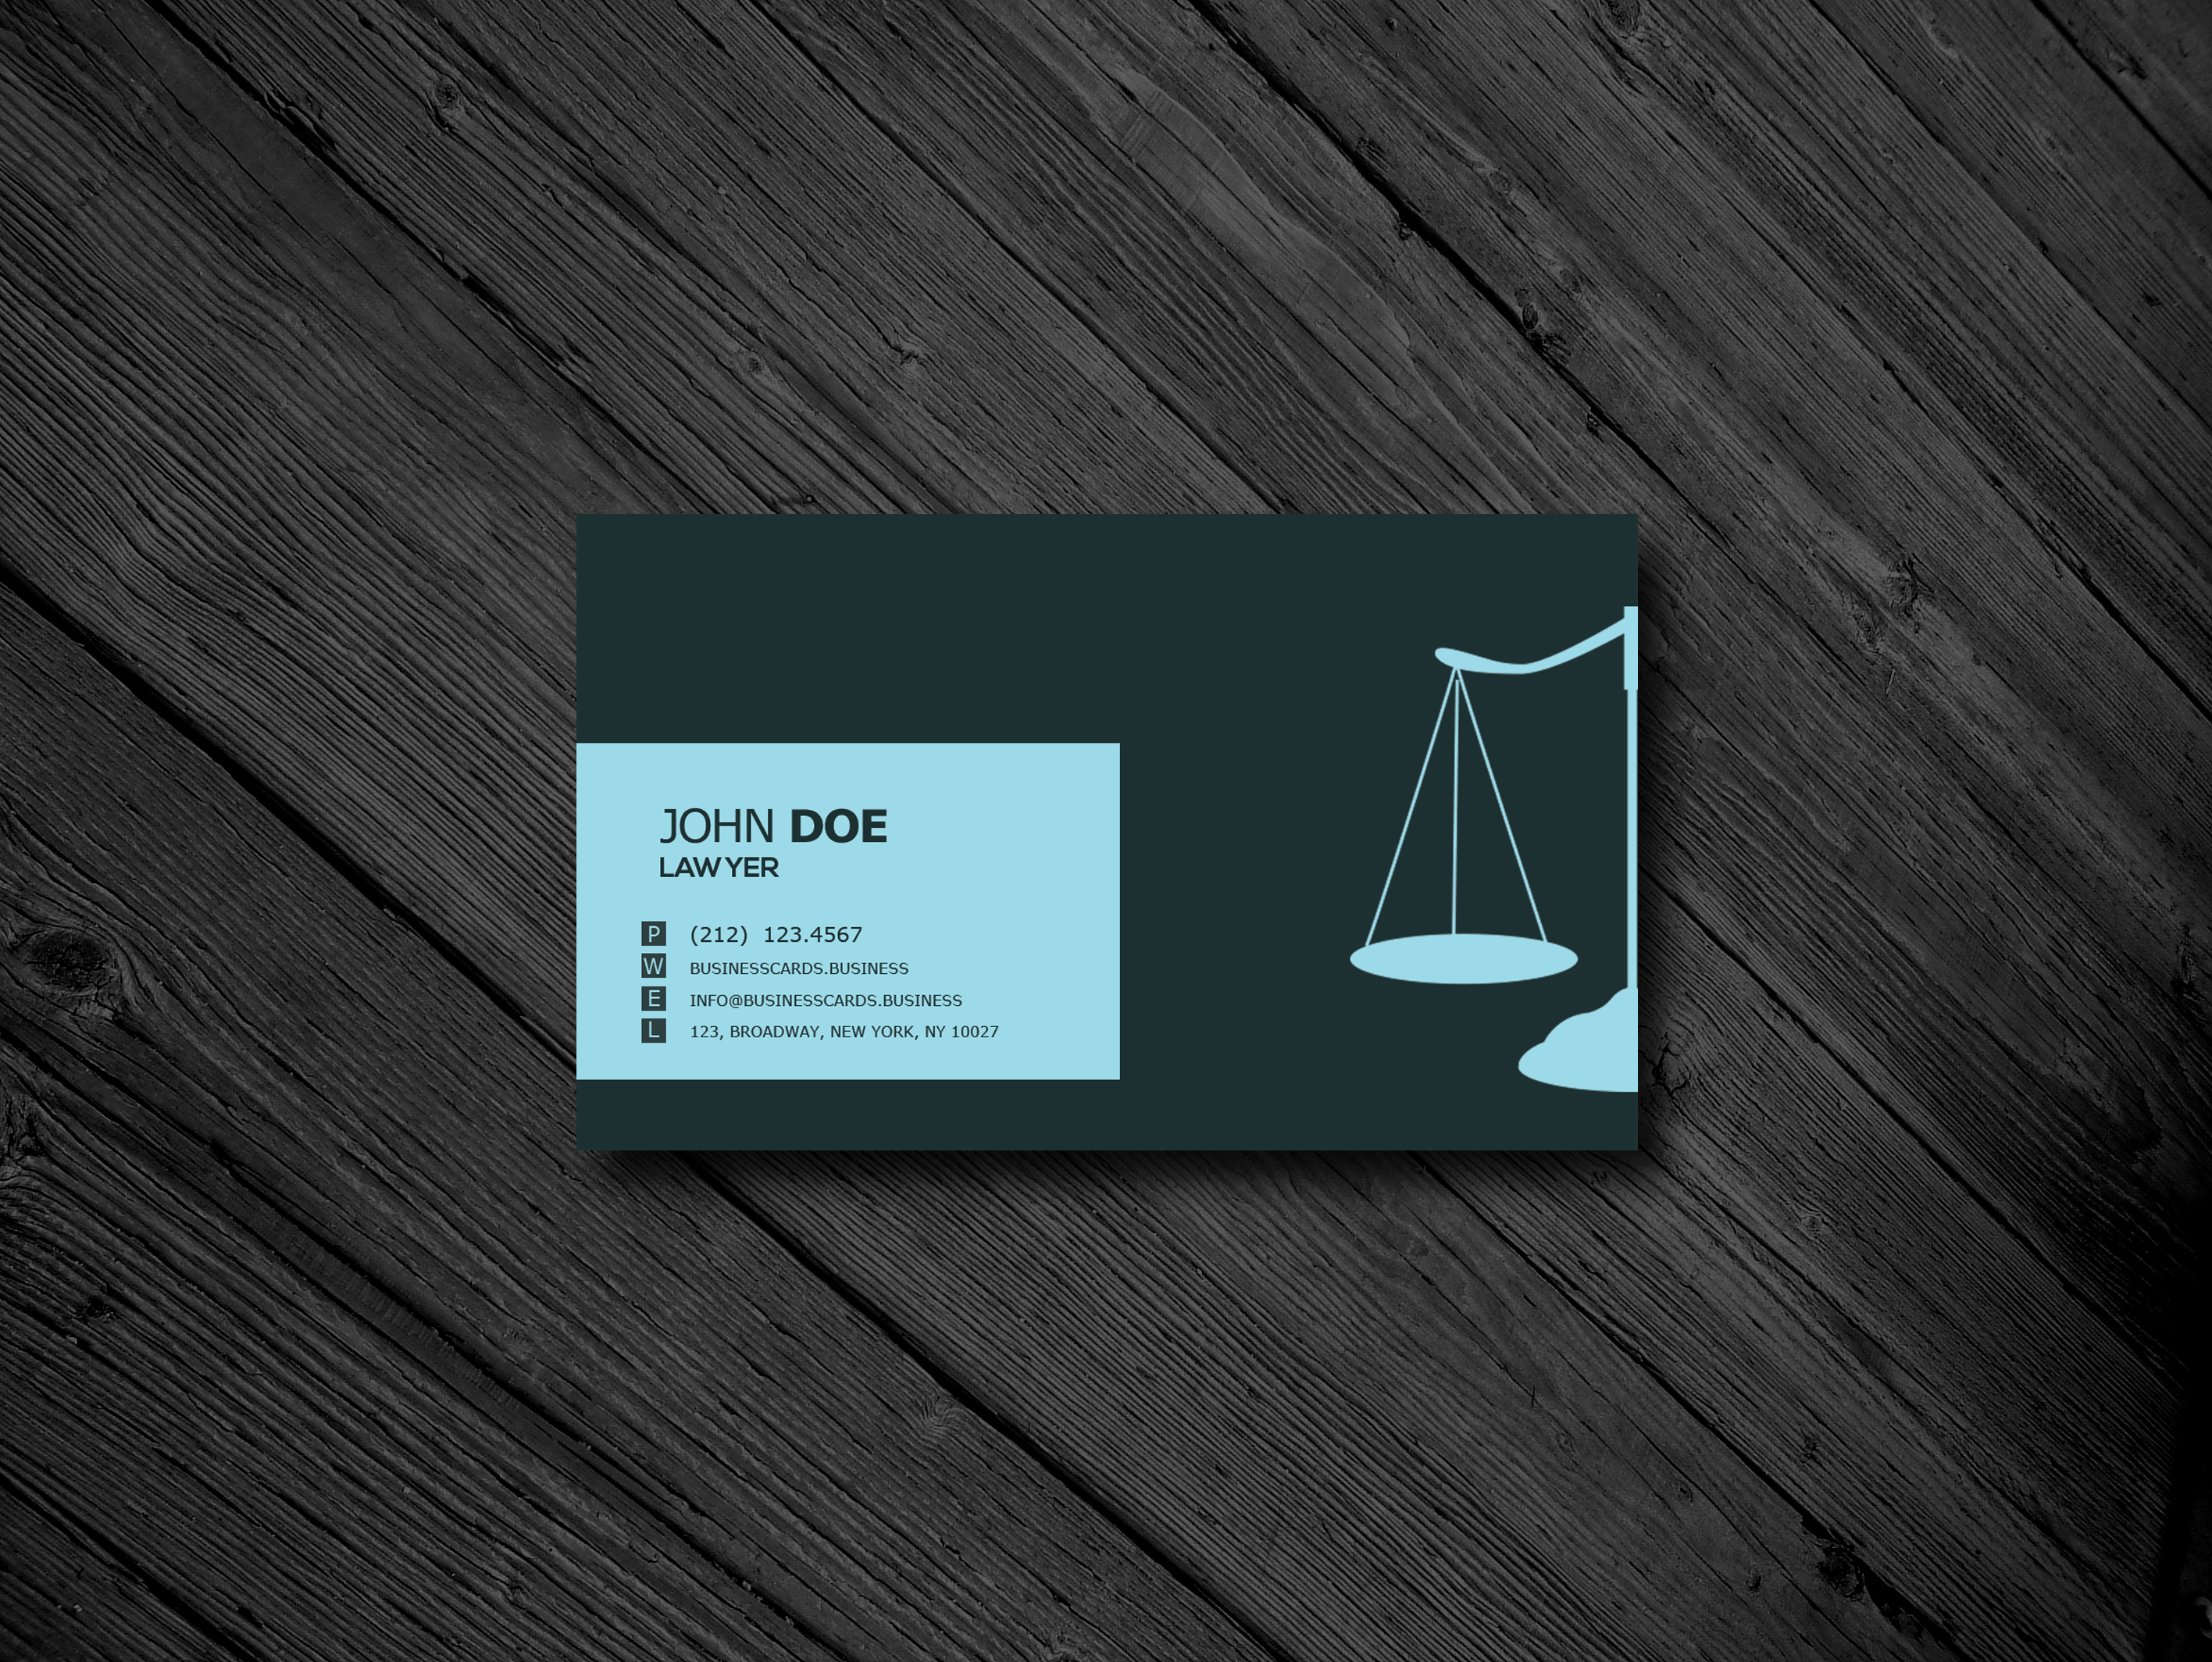 Free business card templates business cards templates free lawyer business card psd template fbccfo Gallery